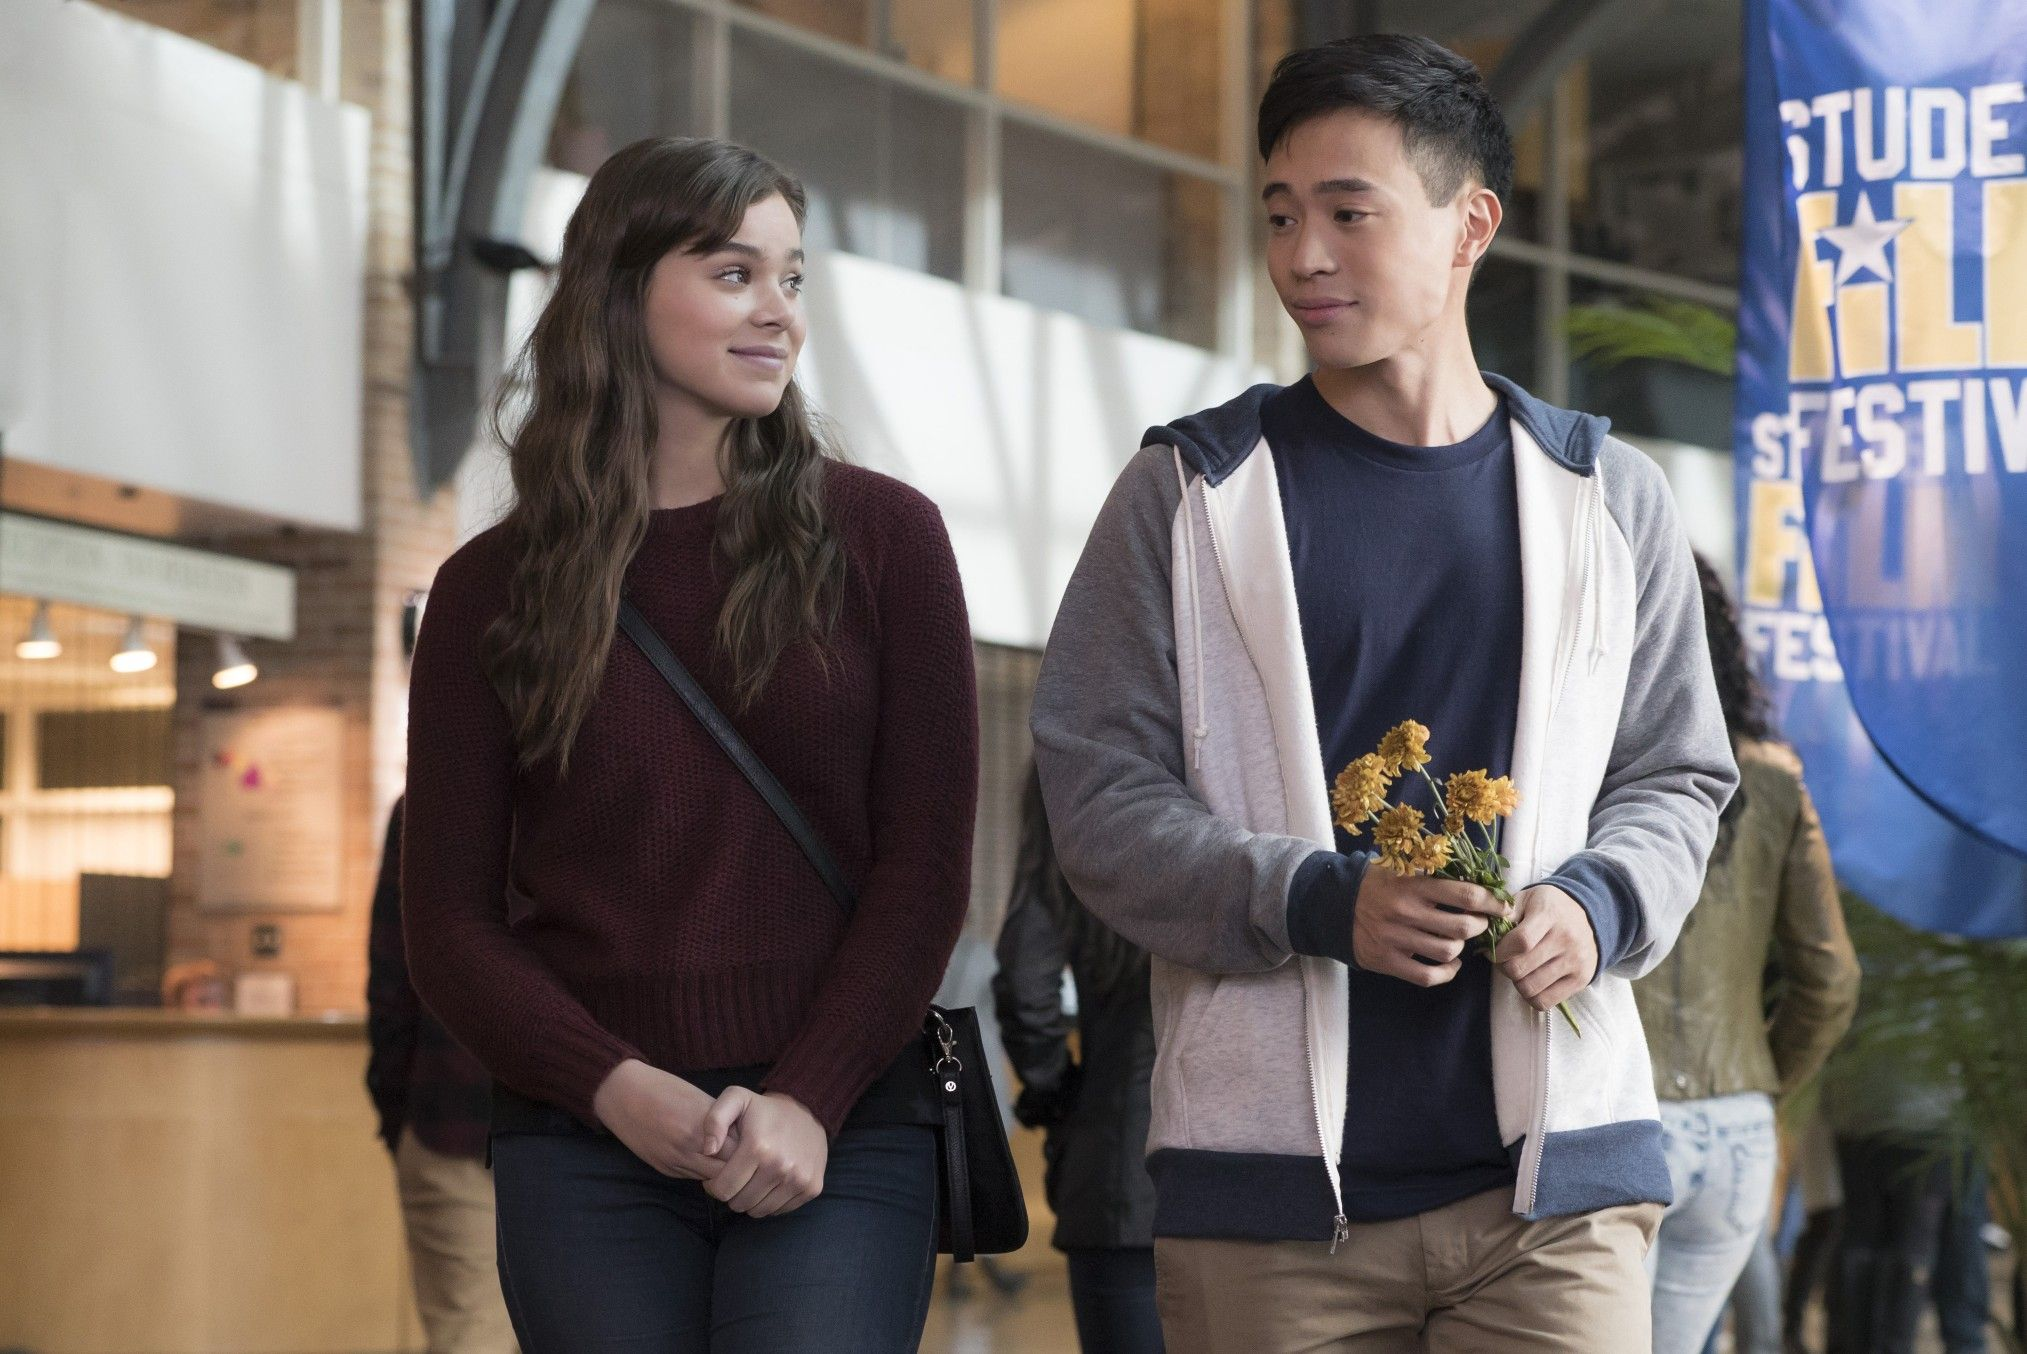 The Edge Of Seventeen Good Comedy Movies Feminist Movies Comedy Movies On Netflix